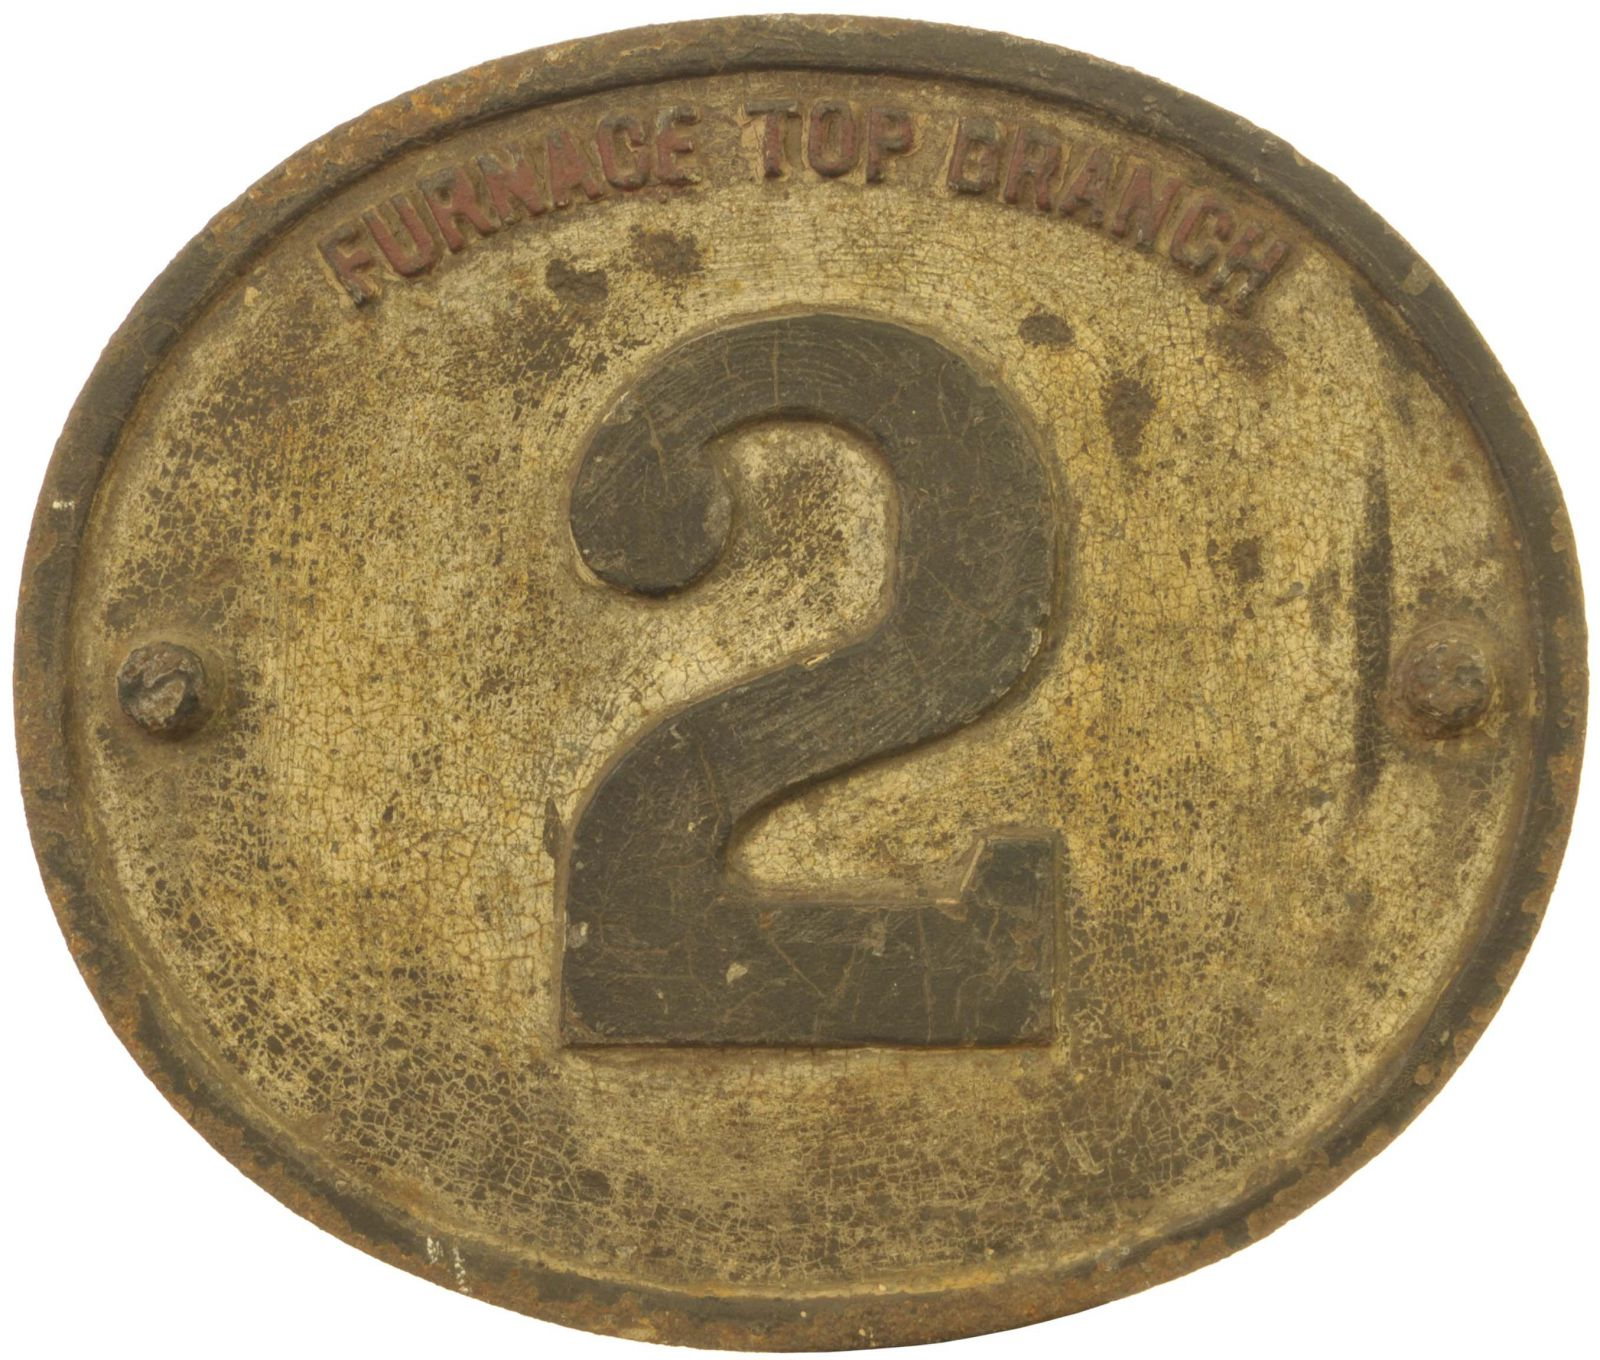 Lot 1 - Railway Bridge Numberplates, Furnace Top Branch, 2 (R. R. Co): A Rhymney Railway bridge plate,